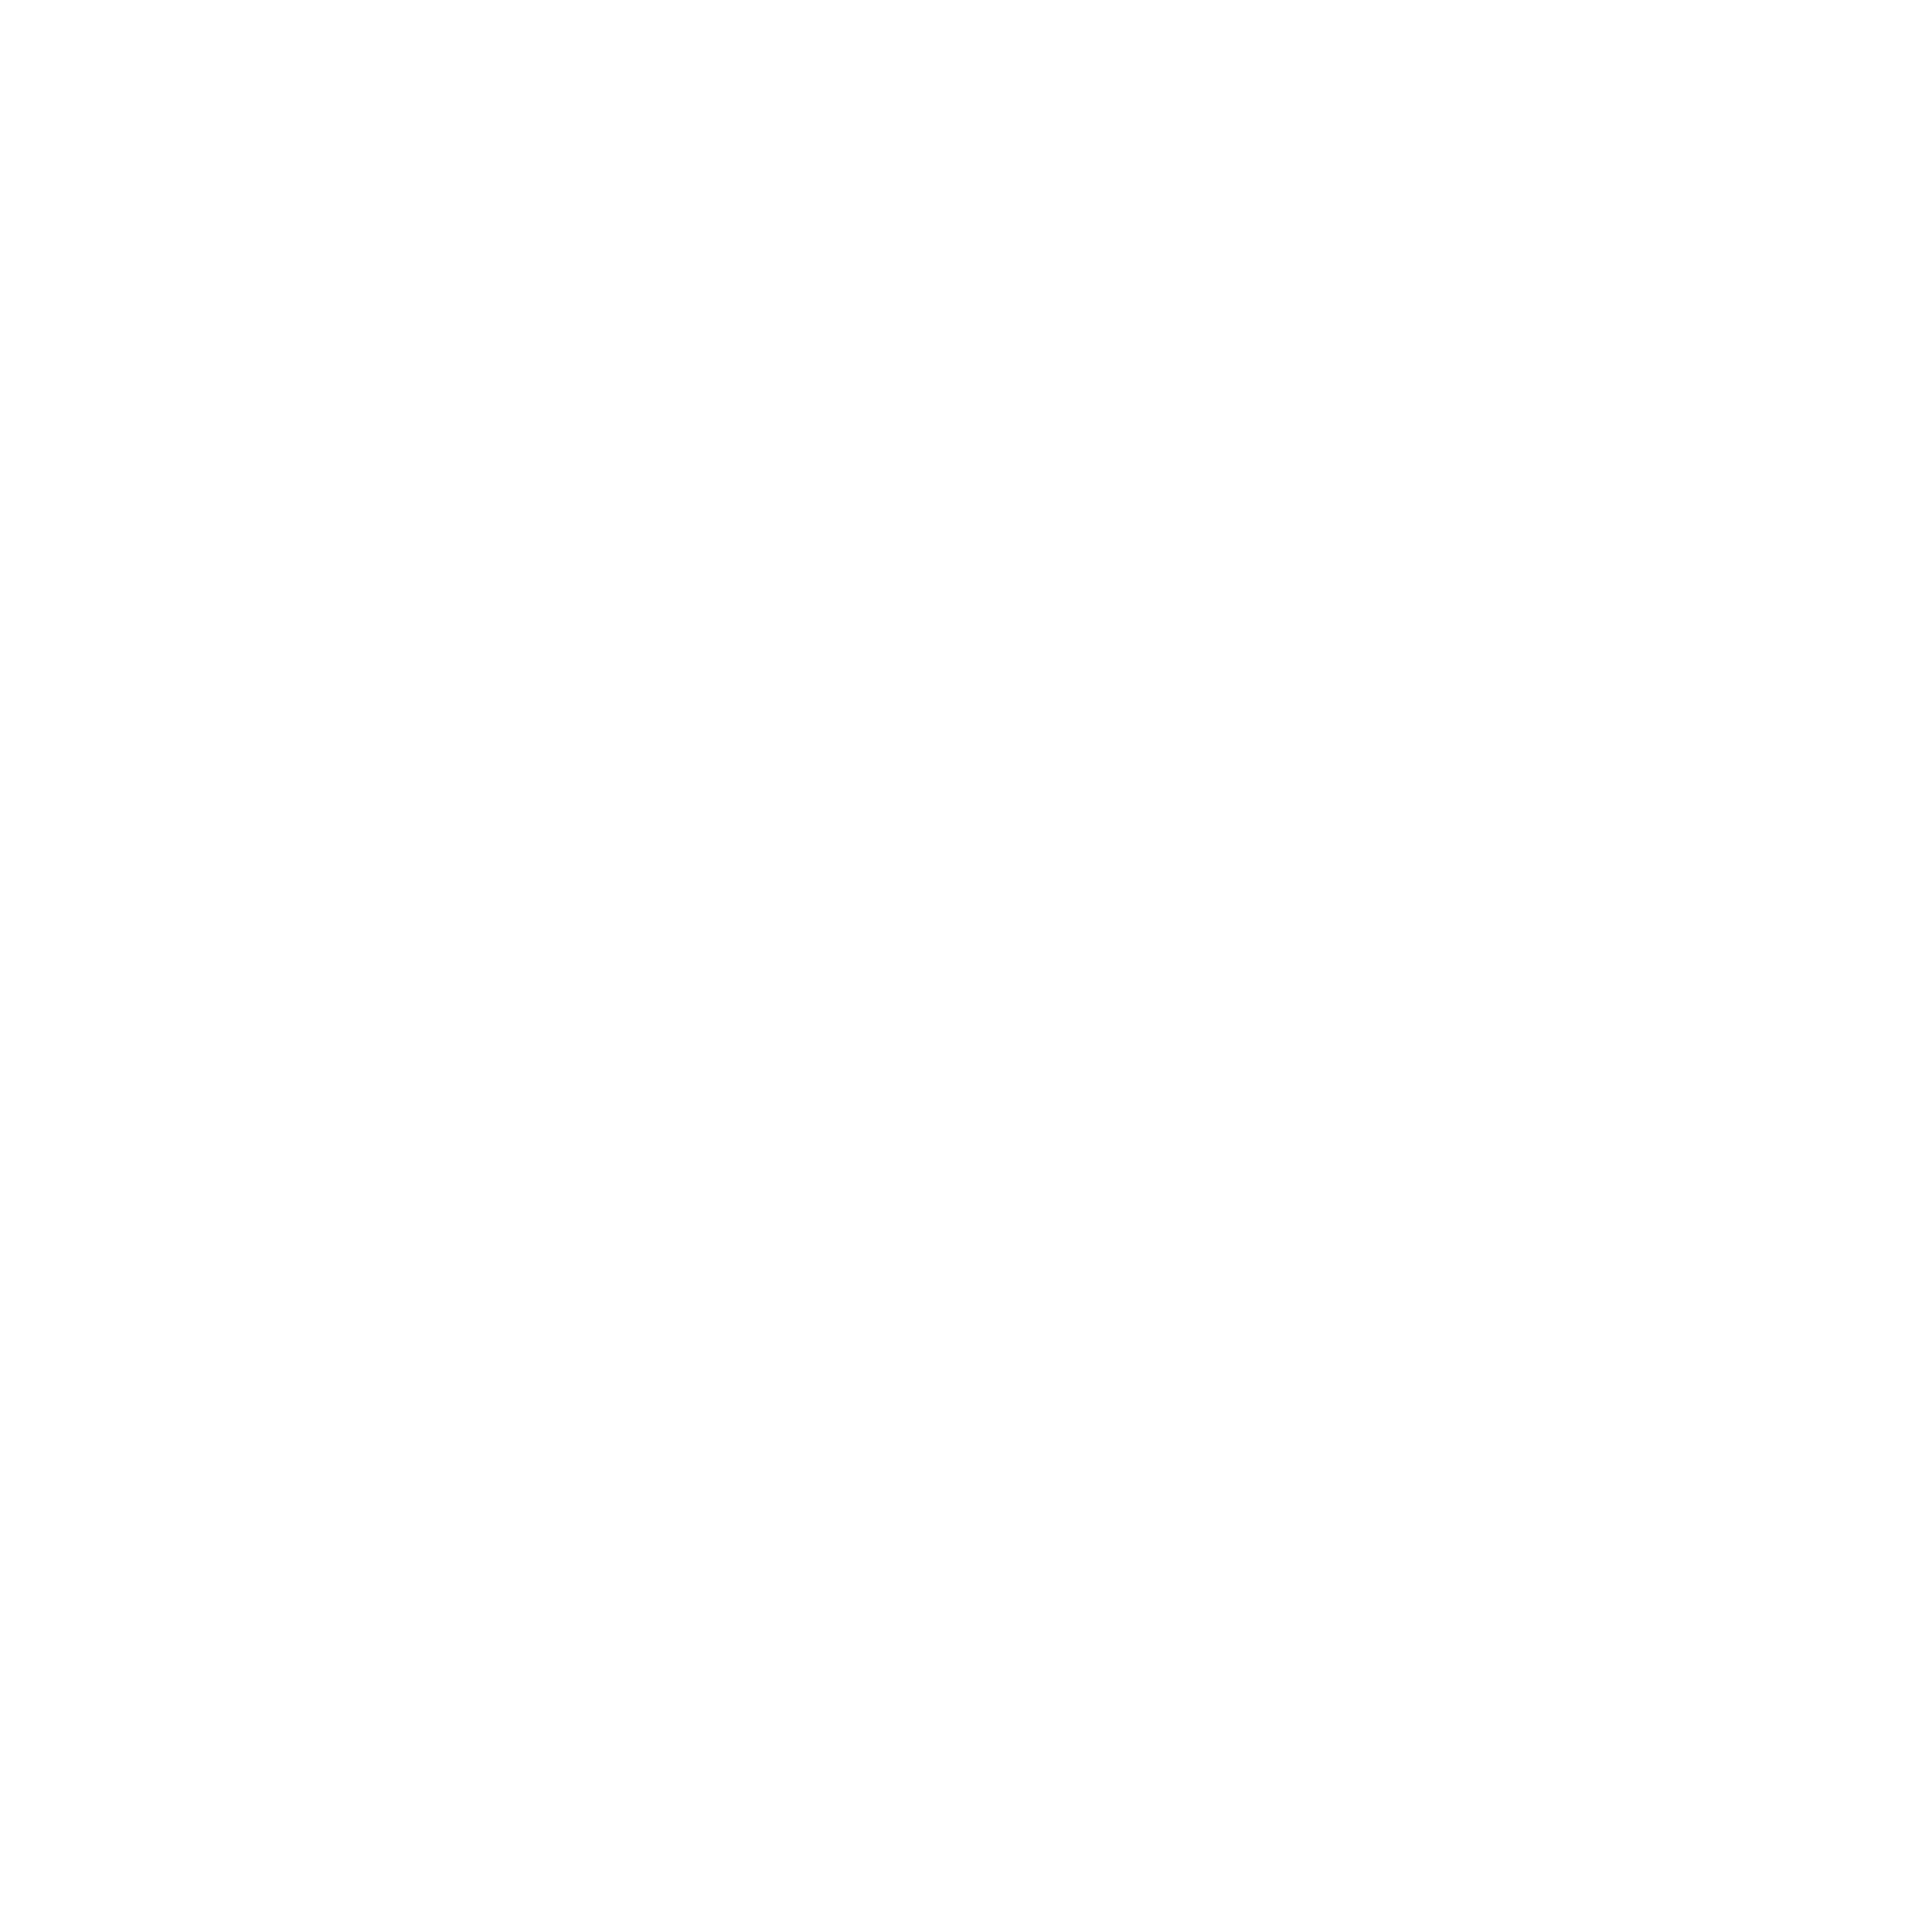 Alrajhi First Trading